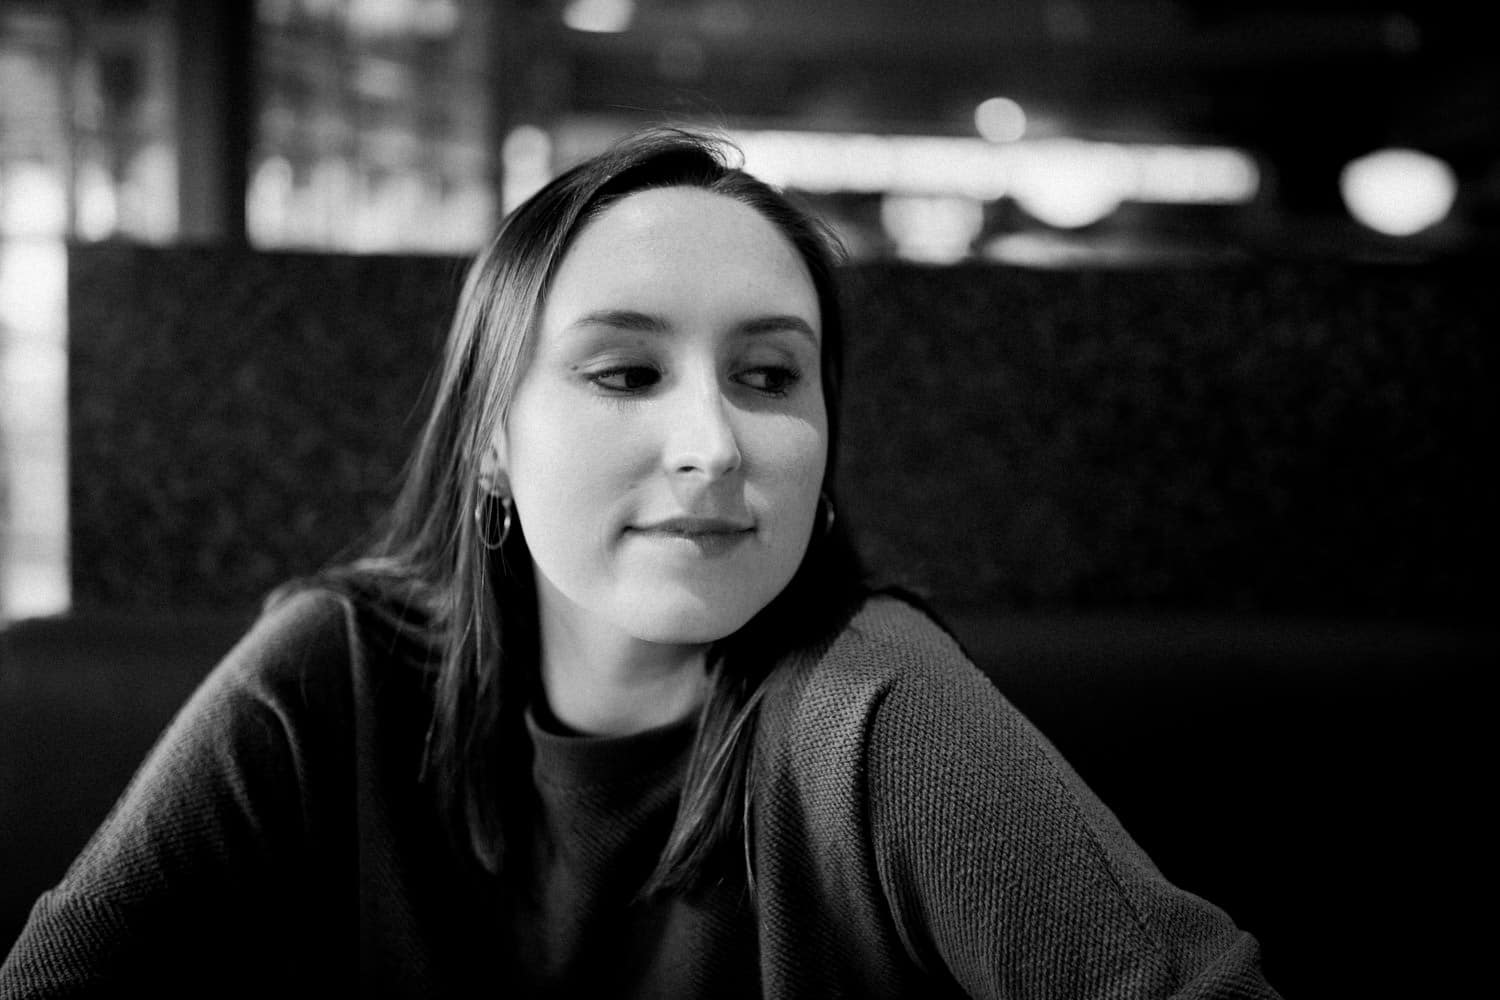 black and white portrait of a woman in a diner